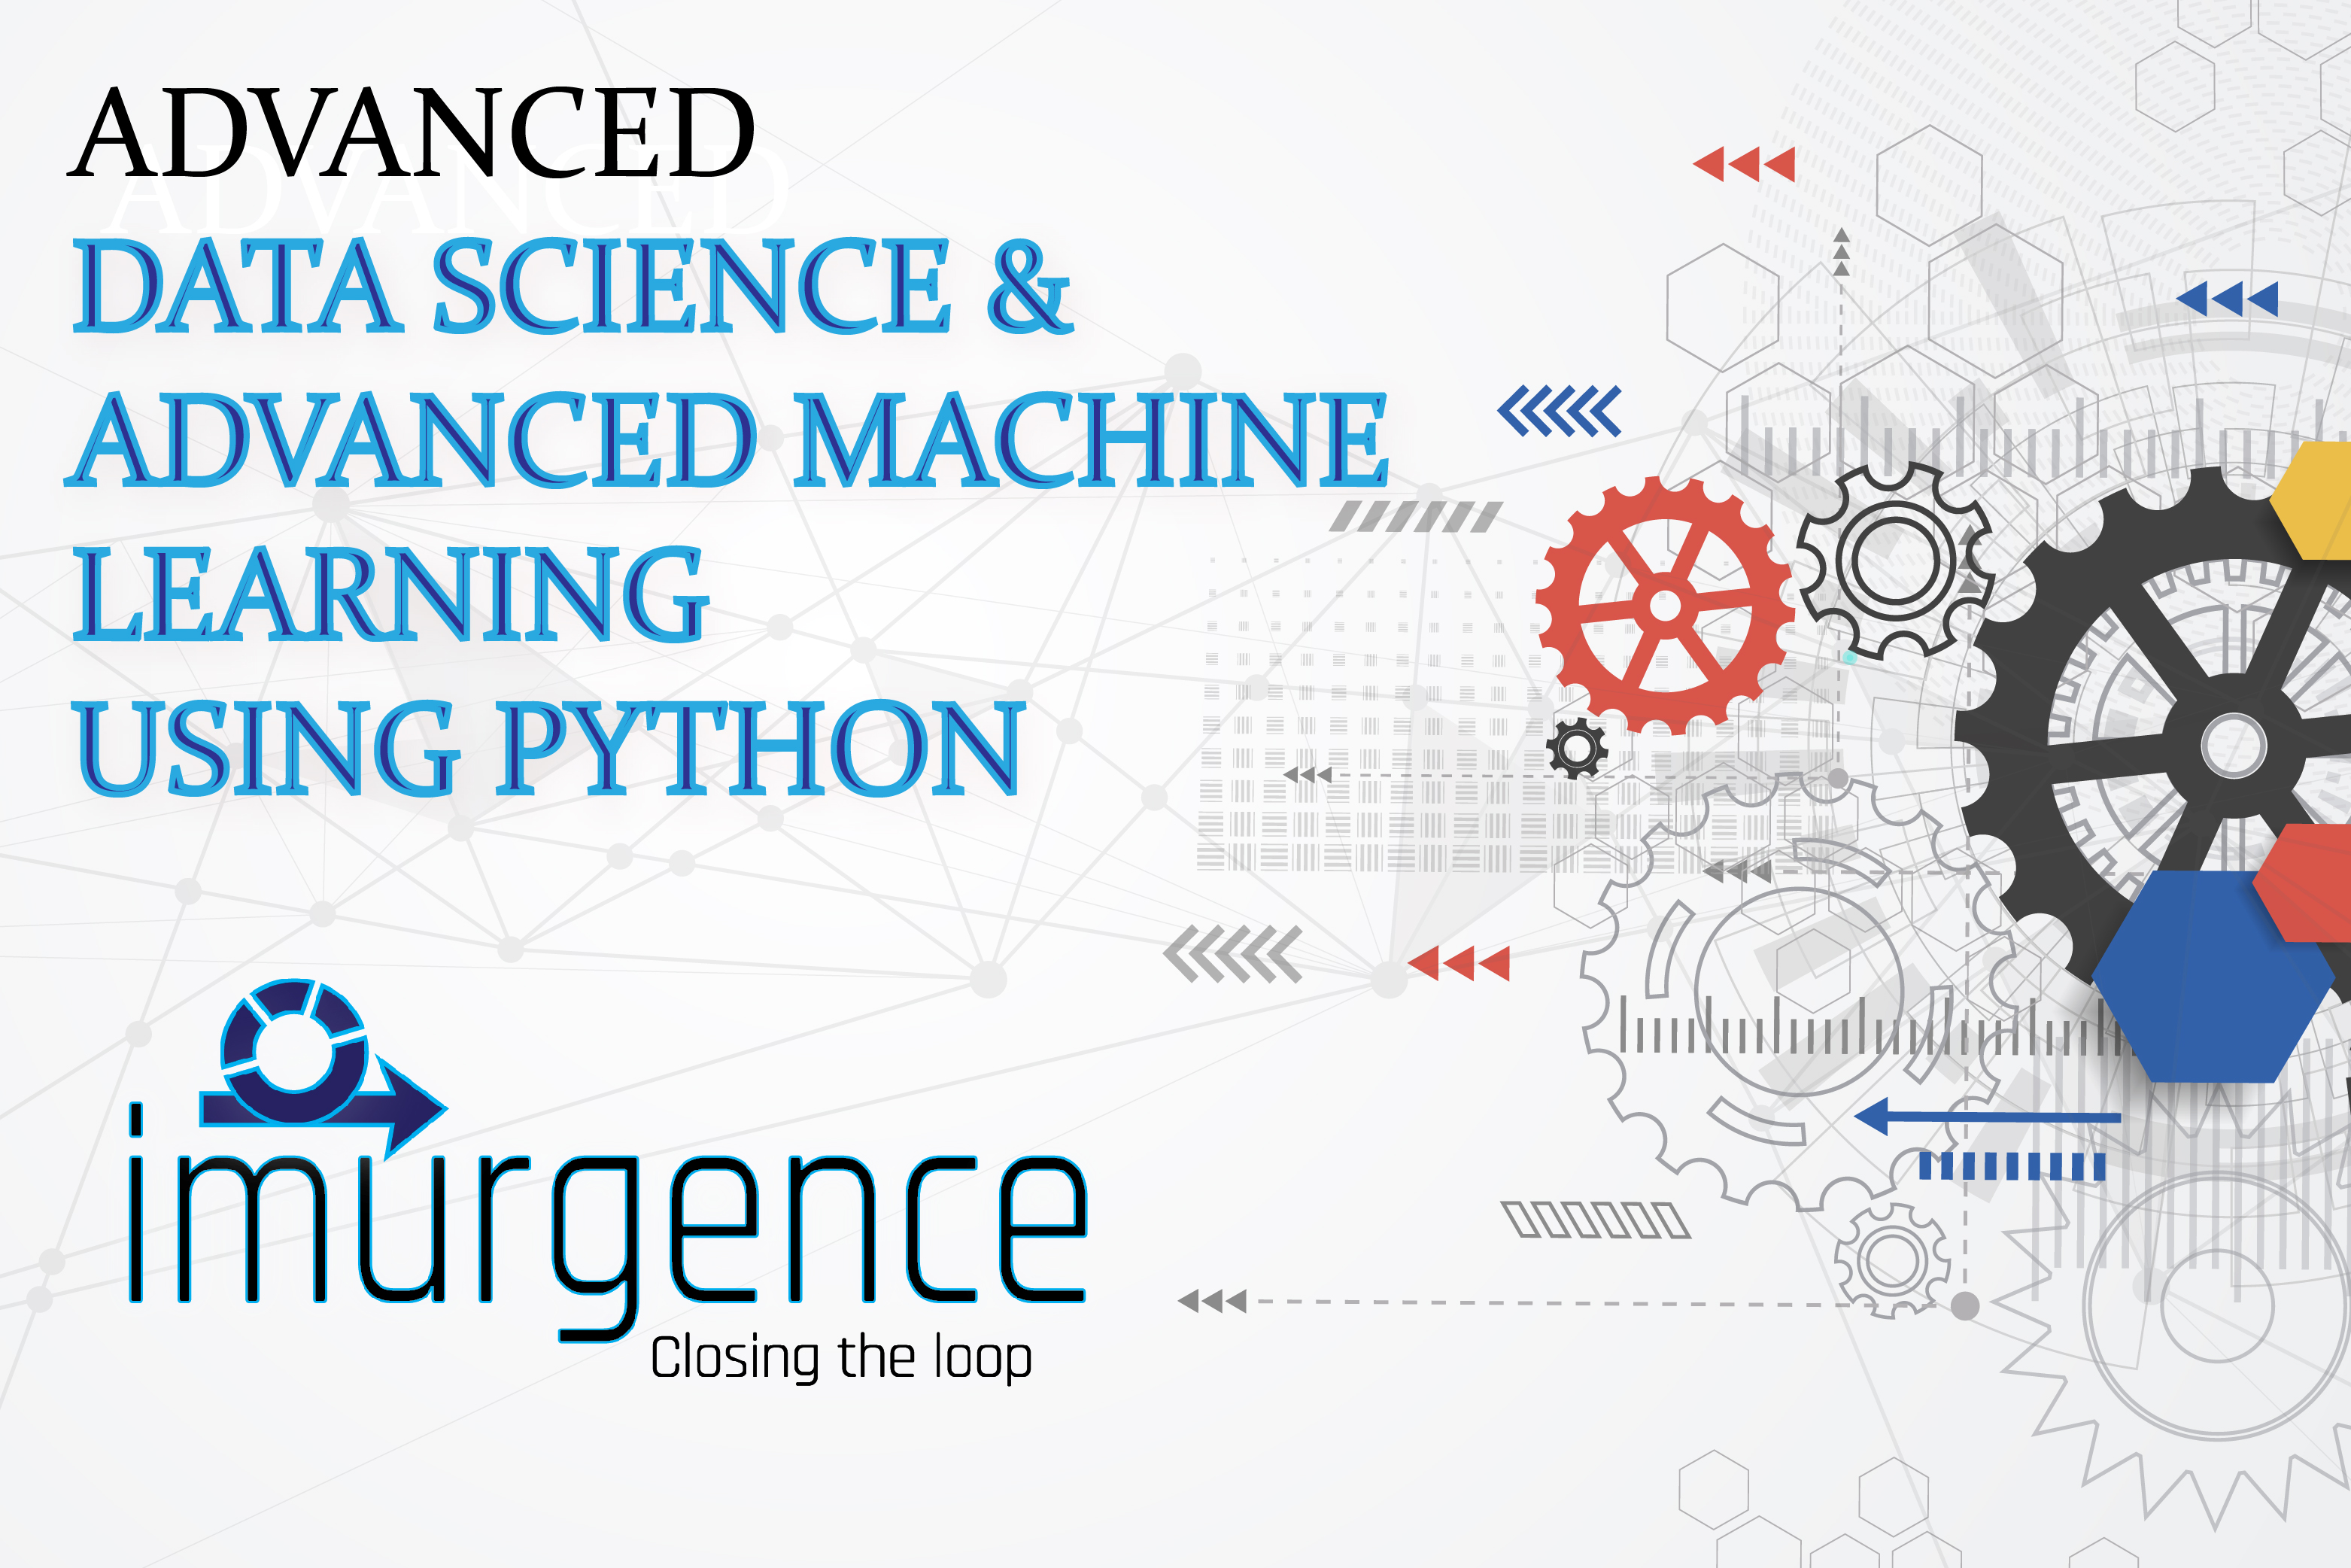 Certificate Program in Data Science & Advanced Machine Learning using Python